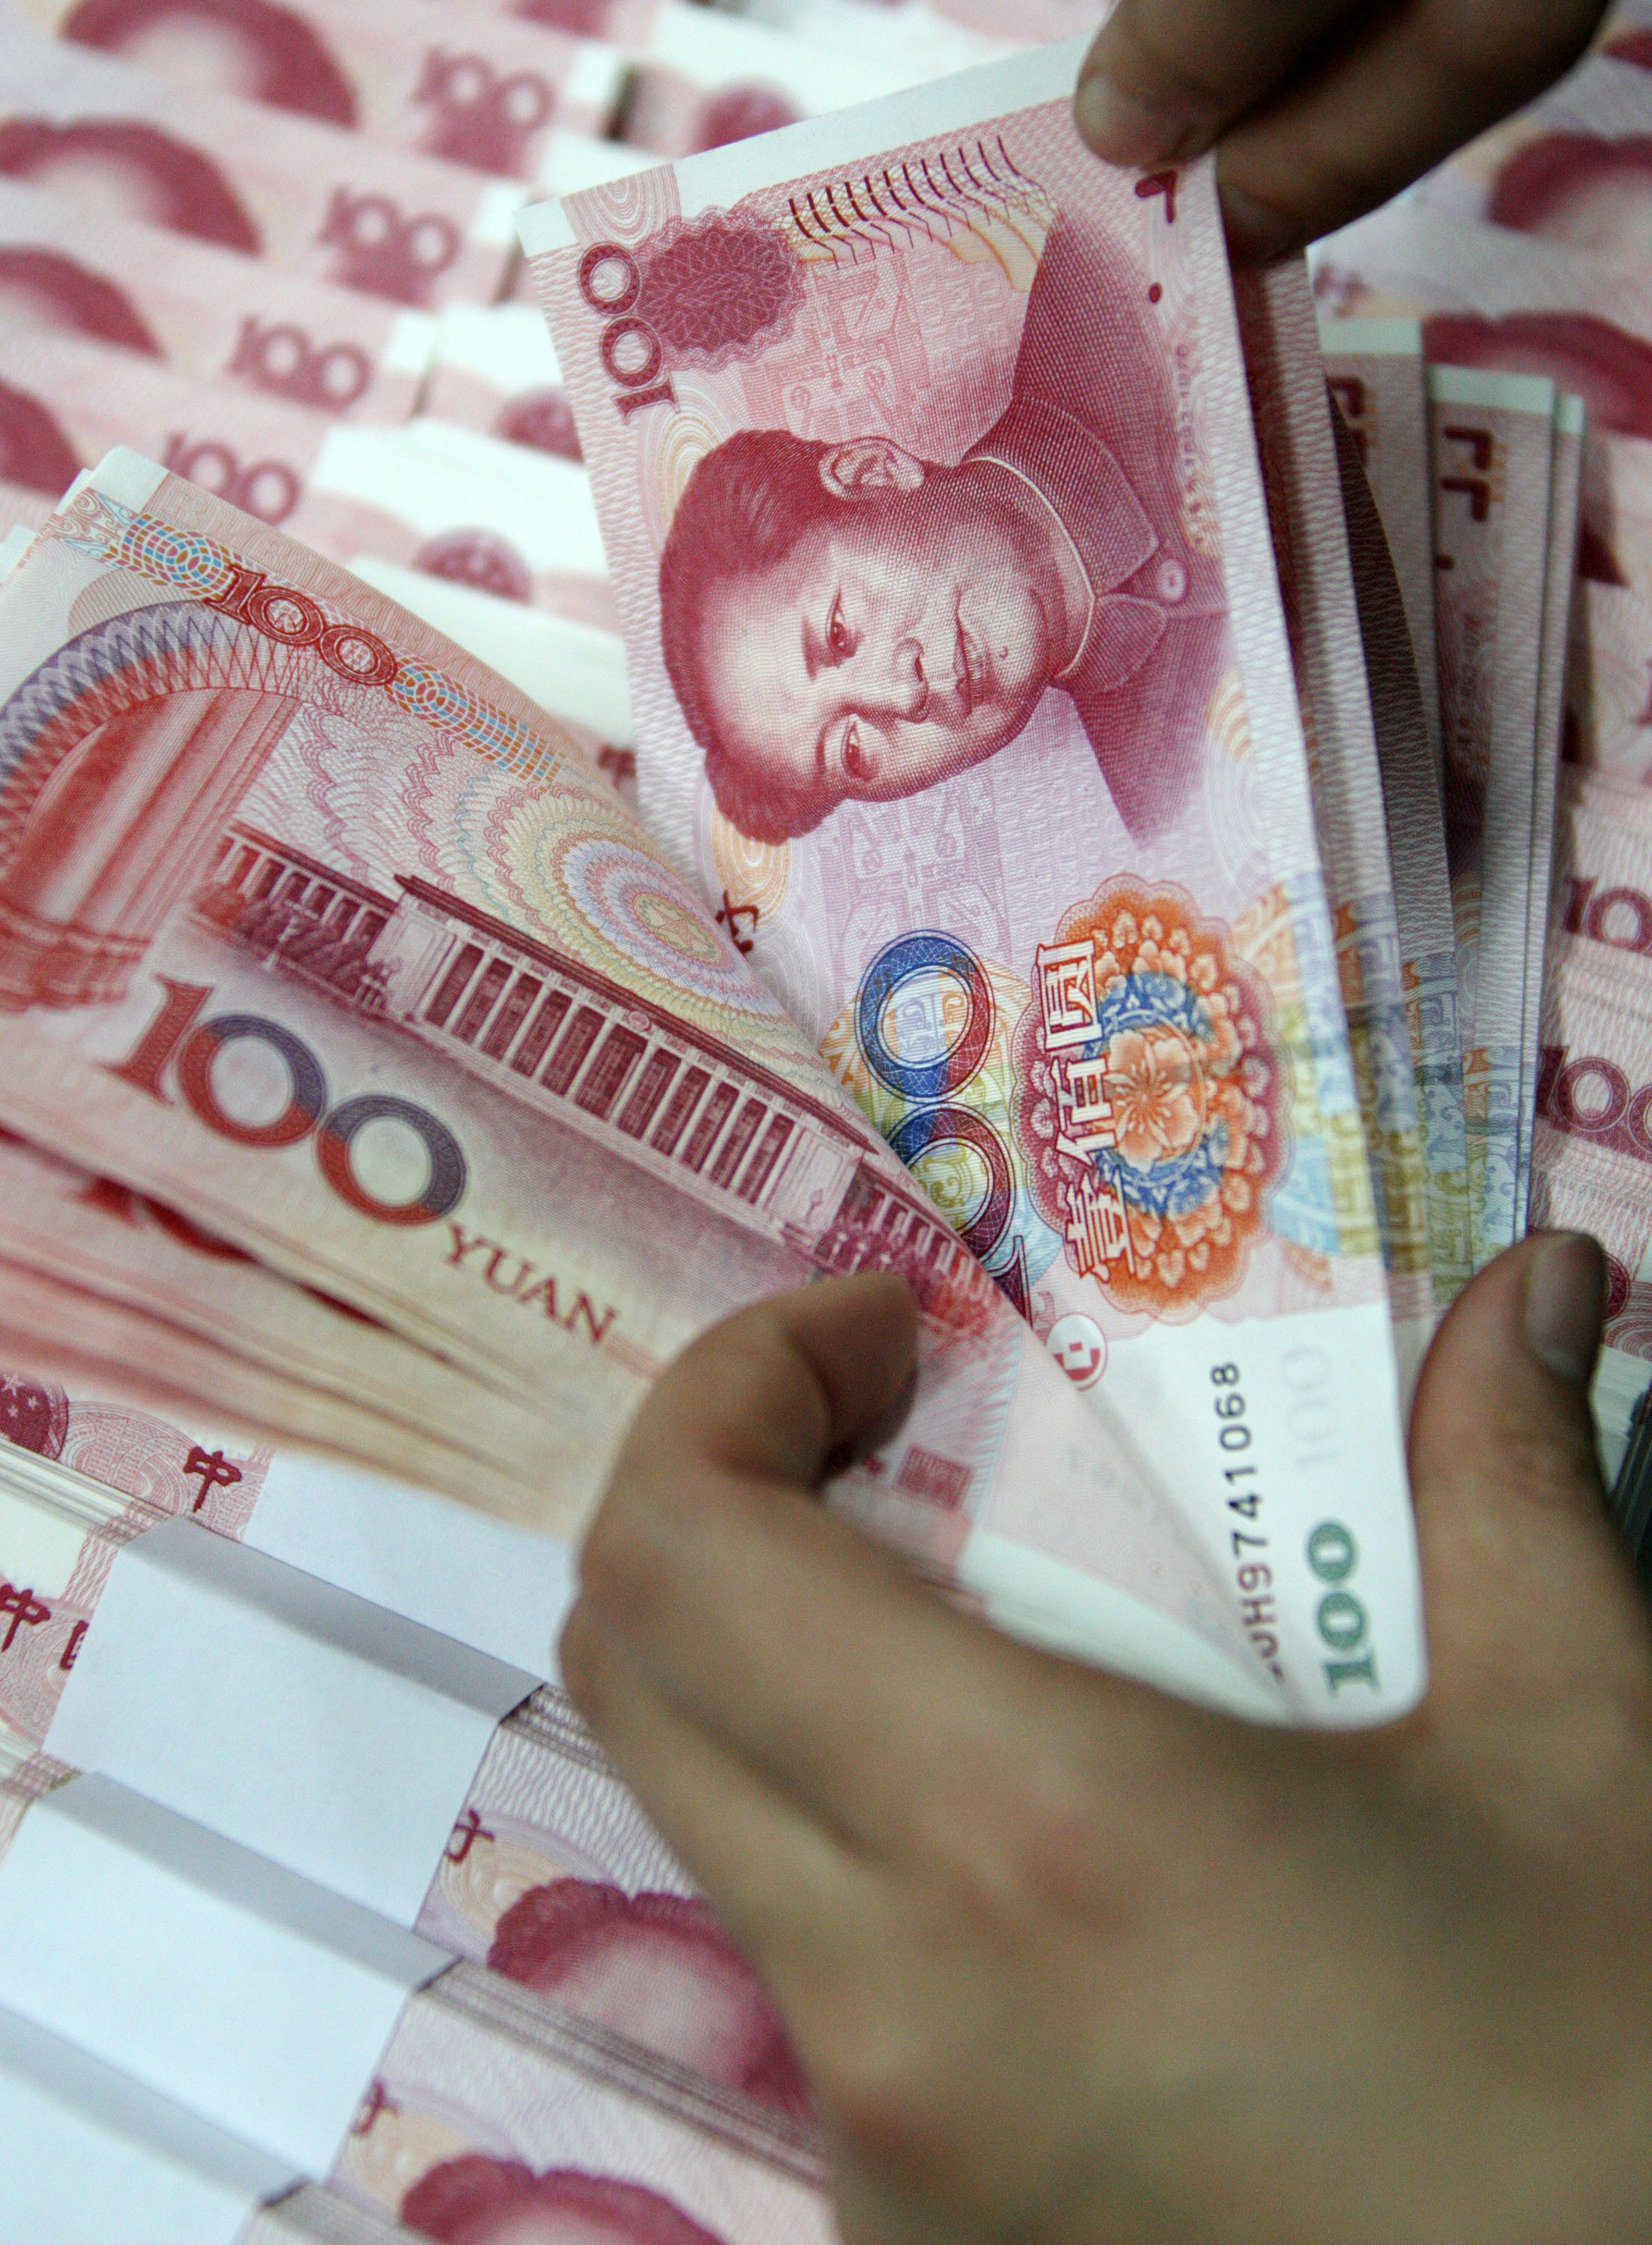 China's currency is a strong barometer on US-China trade